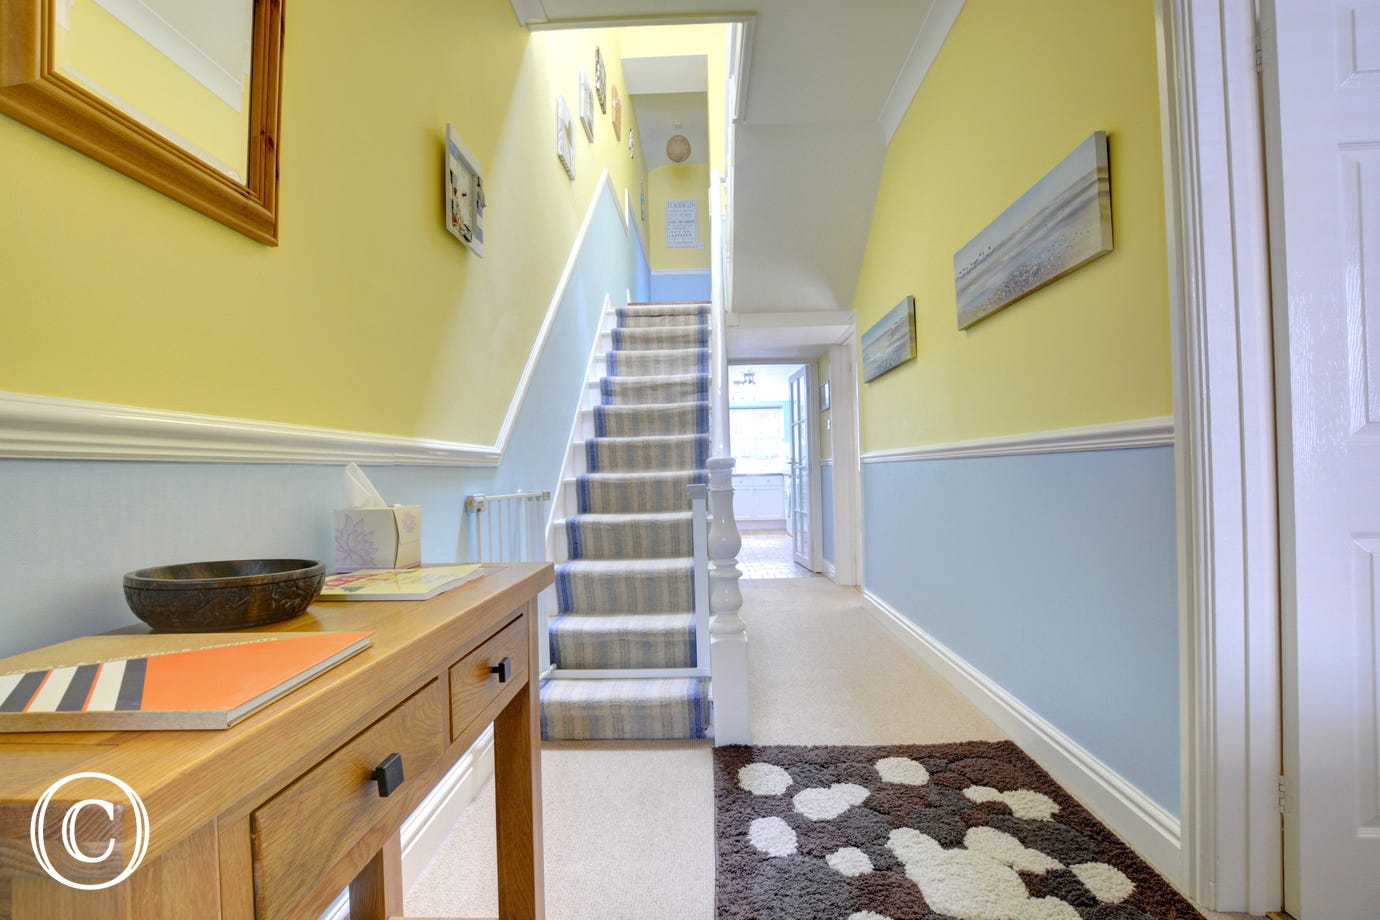 Spacious hallway leading up to bedrooms.